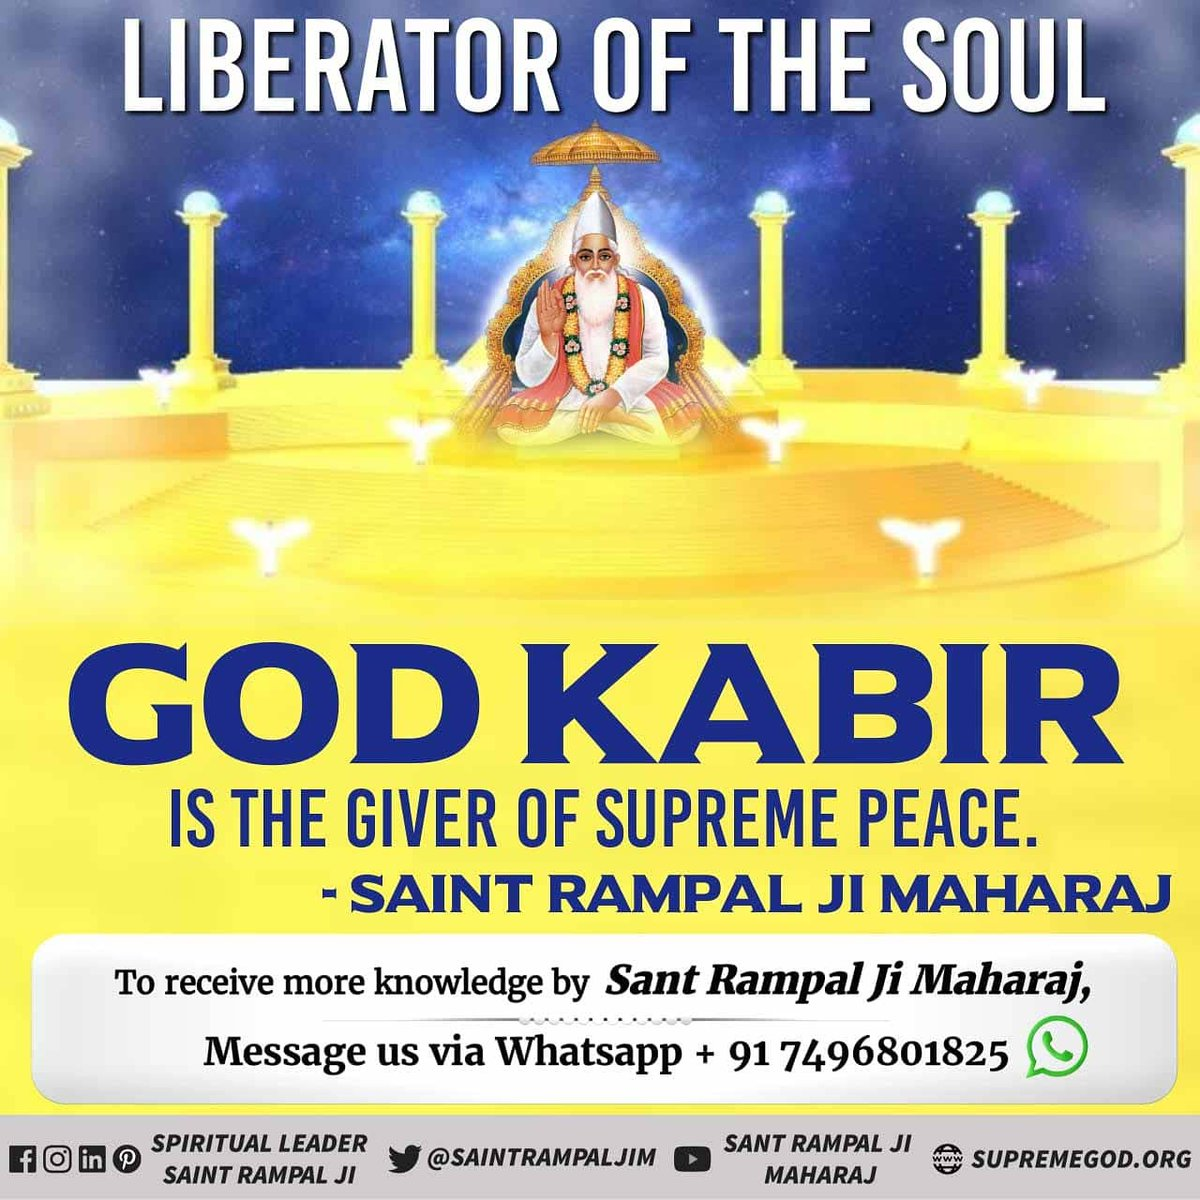 #MondayVibes  According to the all Holy scriptures God/Rab/Allah/Bhagawan is one His name is Lord Kabir 🙏 He is the creator of the whole Universes  VisitSatlok Ashram Youtube channel for more info  #MondayMotivation  #MondayMorning  #GodMorningMonday